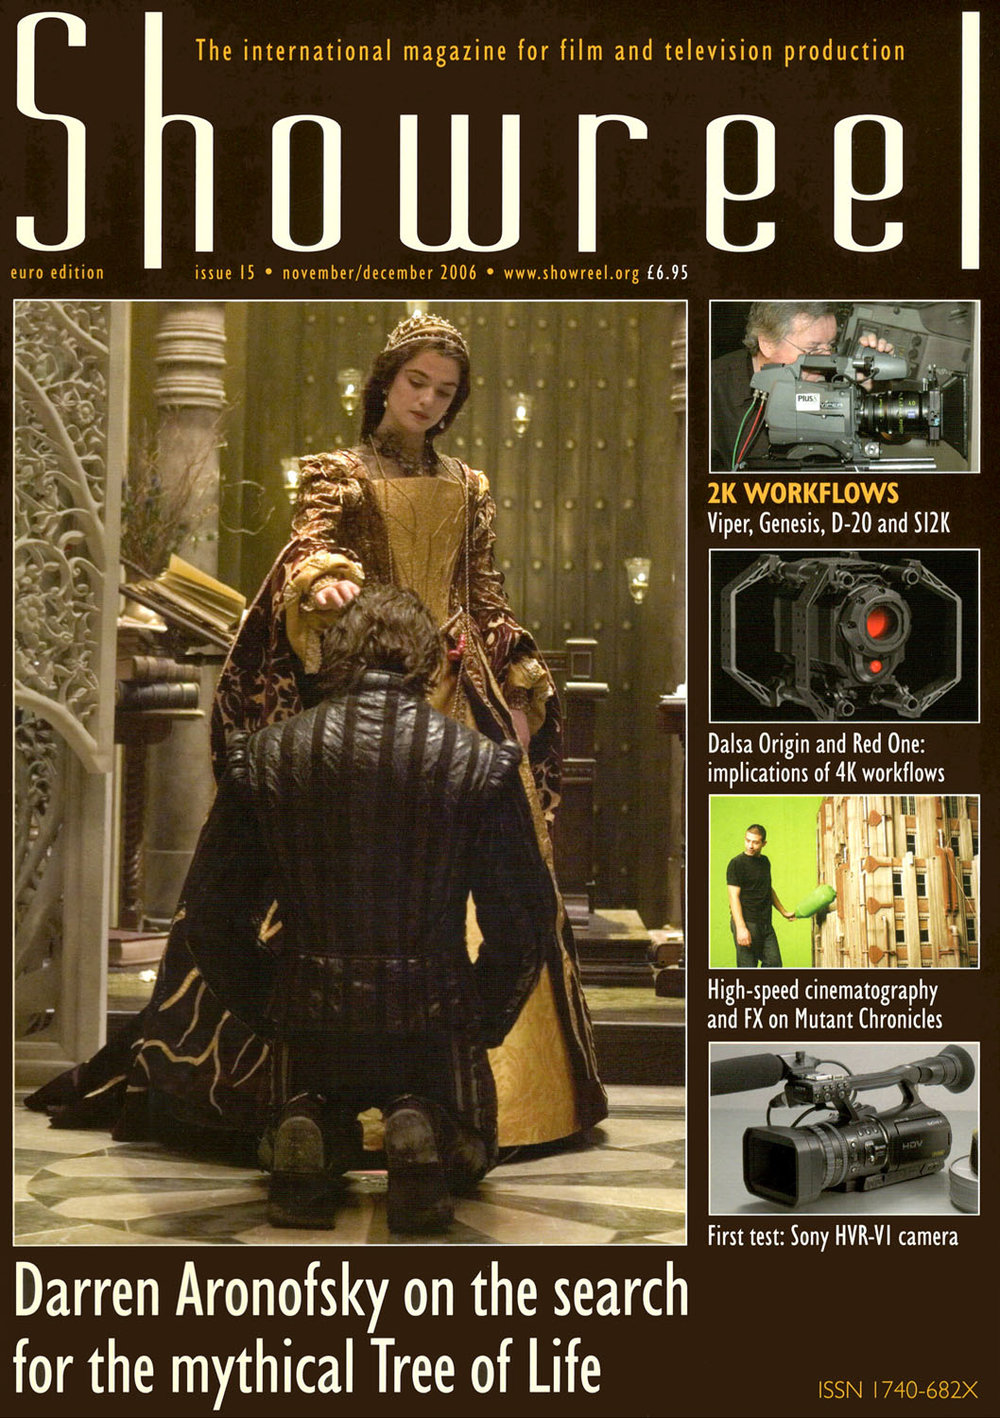 showreel_cover_issue-15_nov-dec-2006_euro-edition_[aronofsky]_crop_[smal]_1058x1500_72dpi_high.jpg